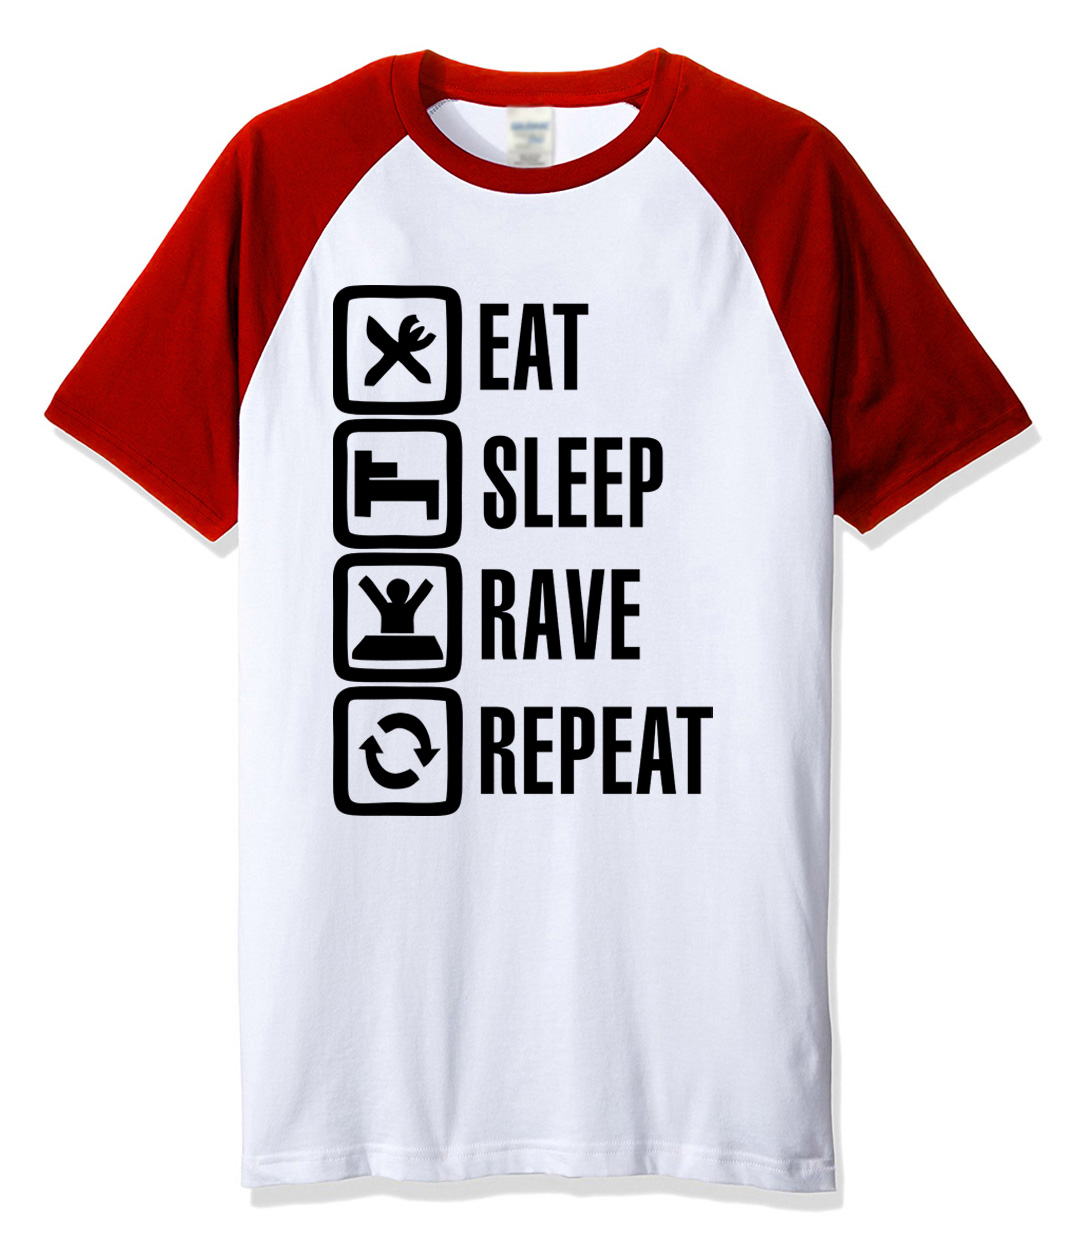 New 2018 summer T-shirts for men Eat Sleep Rave Repeat funny tshirt letter print fashion fitness brand raglan t shirt men kpop